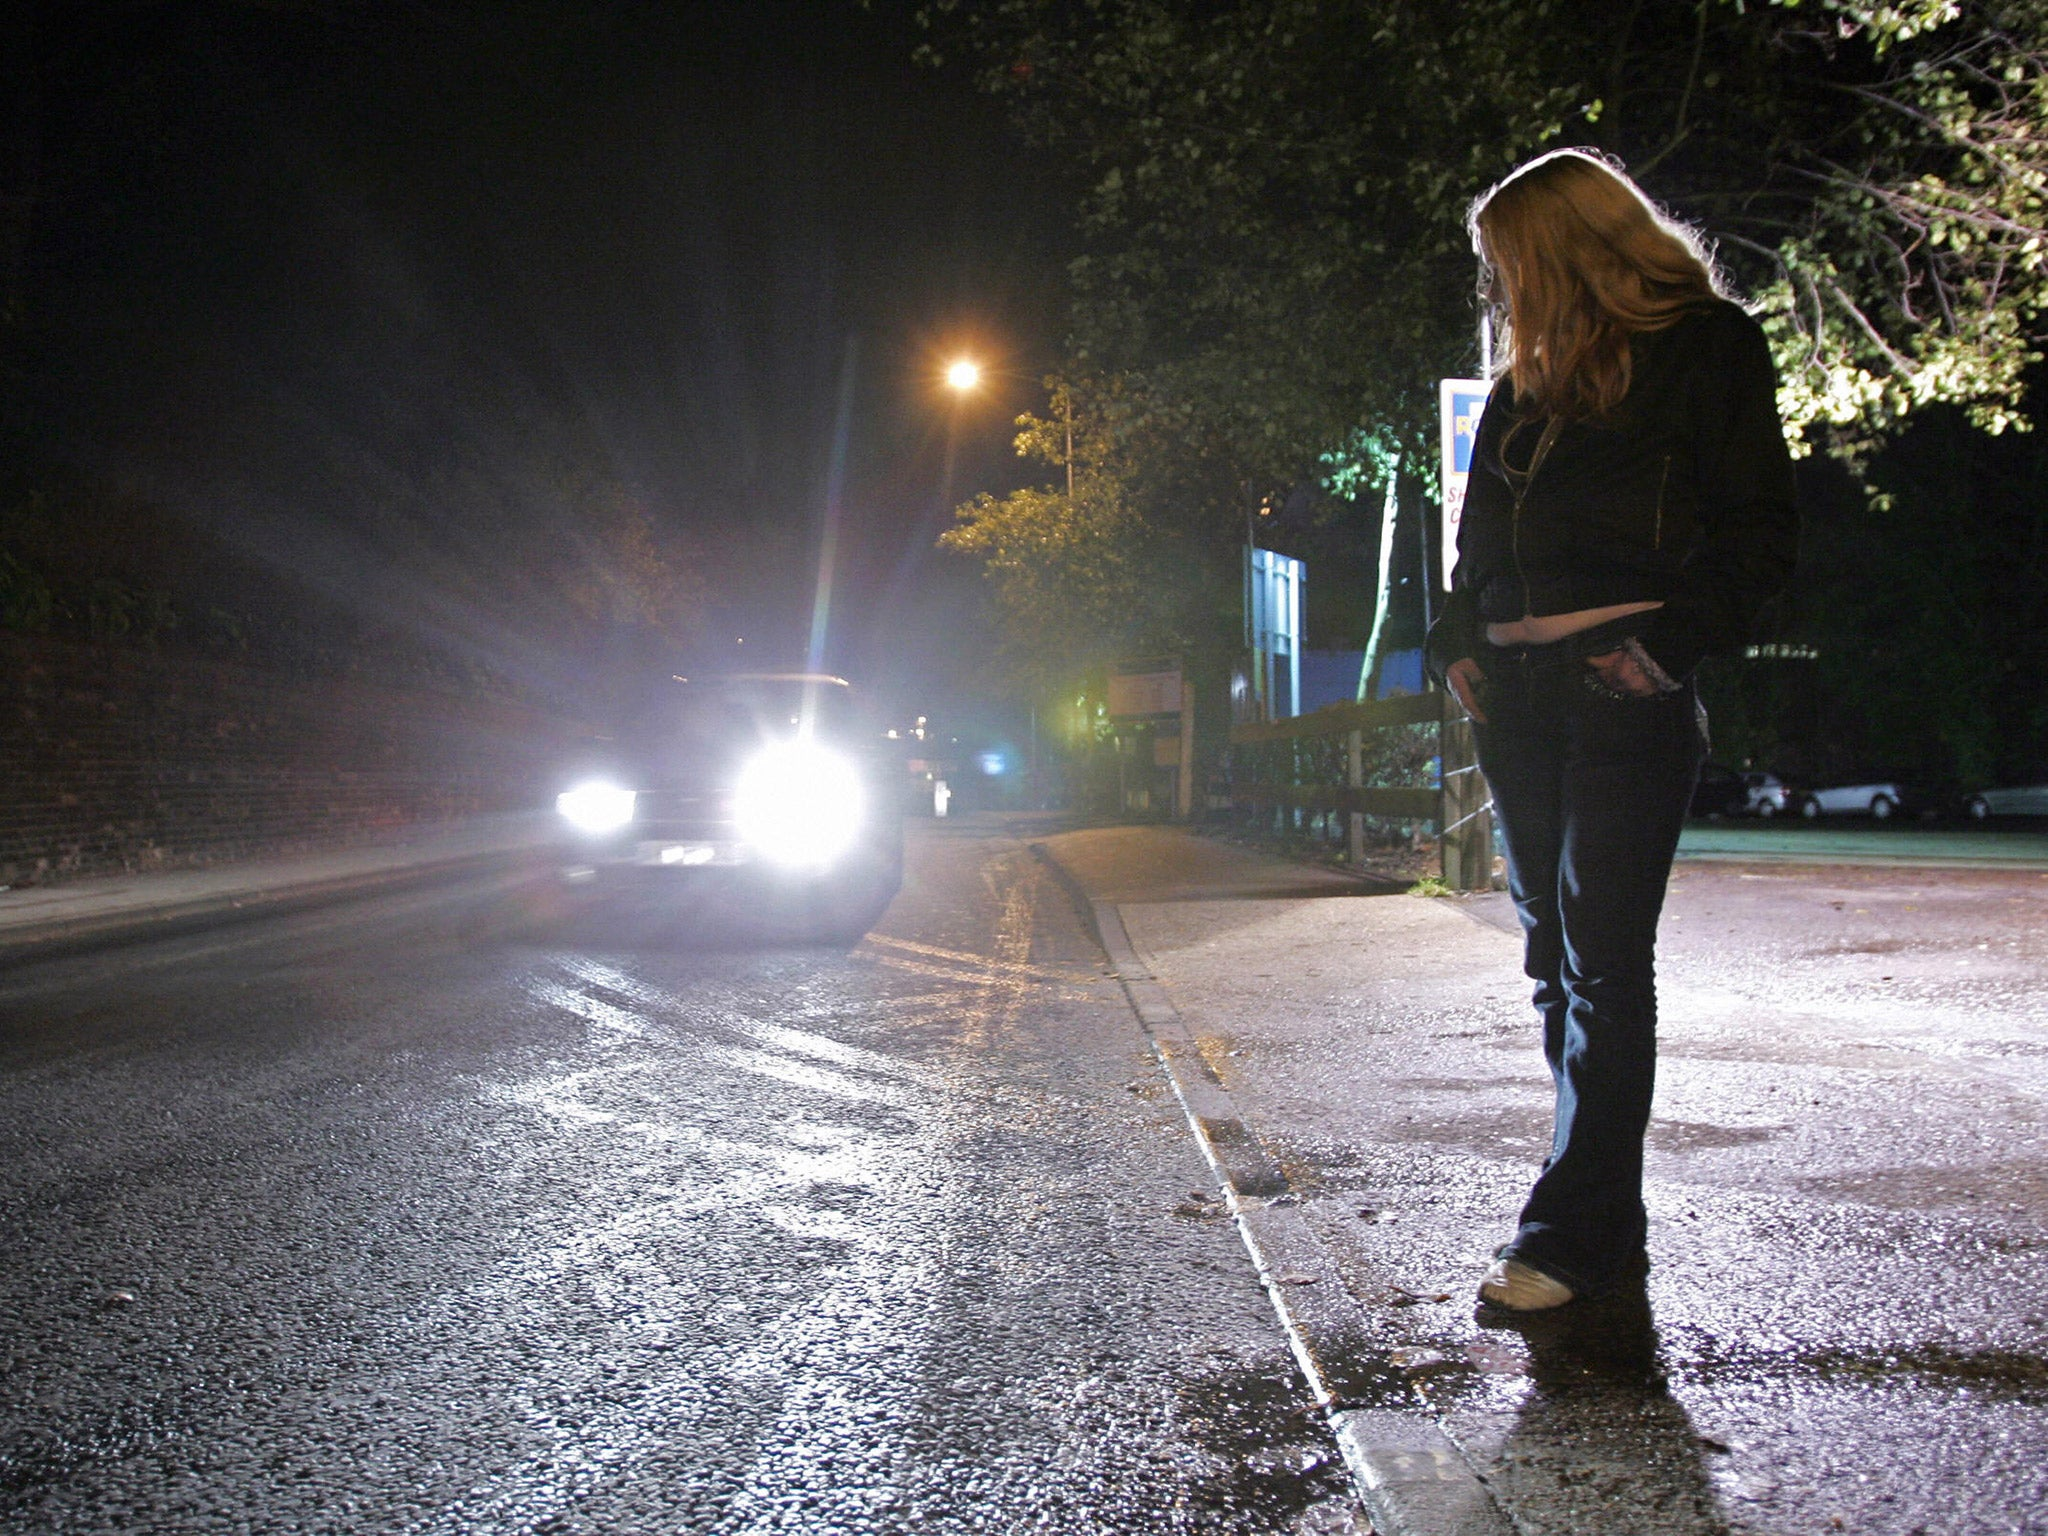 news crime decriminalising prostitution could reduce levels rape attacks report says